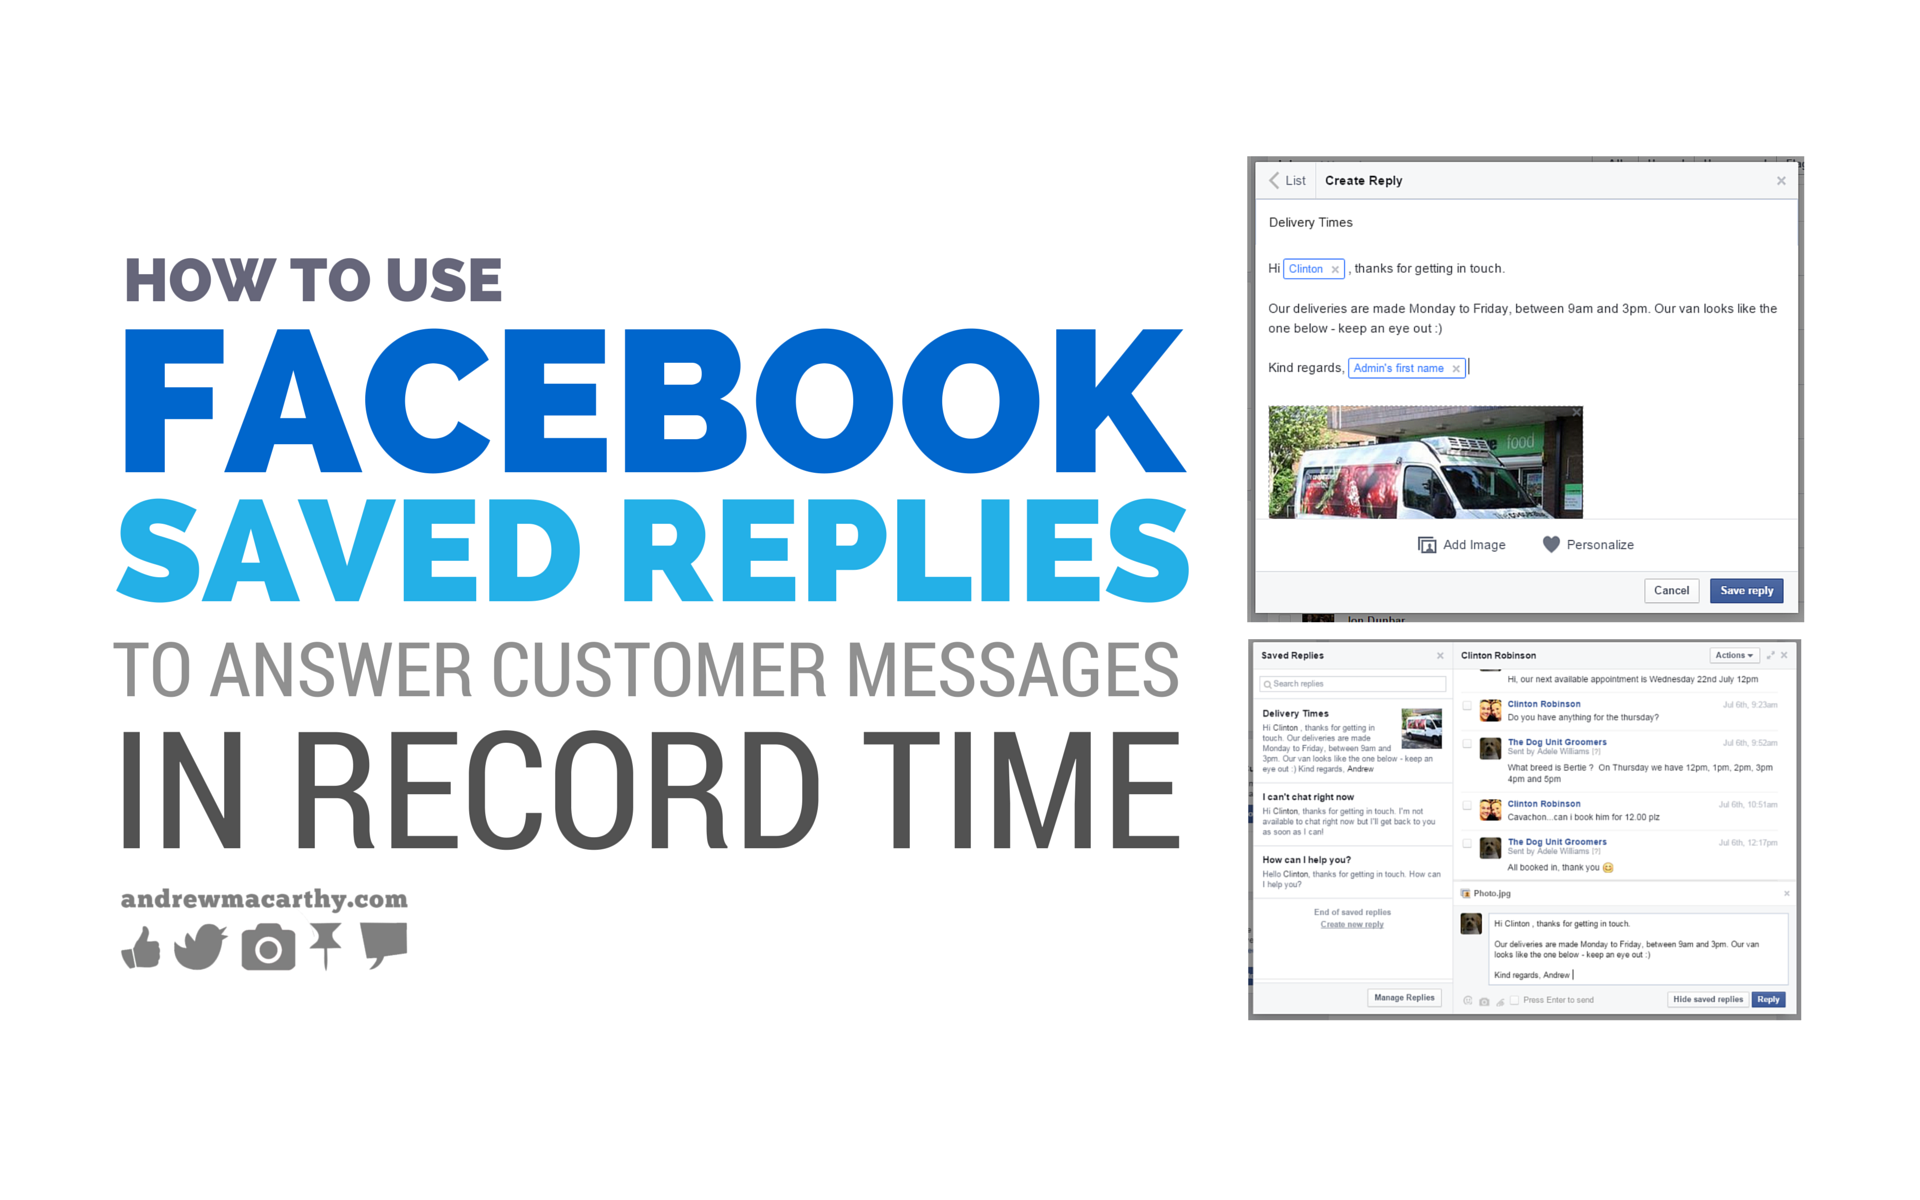 How to Use Facebook Saved Replies to Answer Customer Messages in